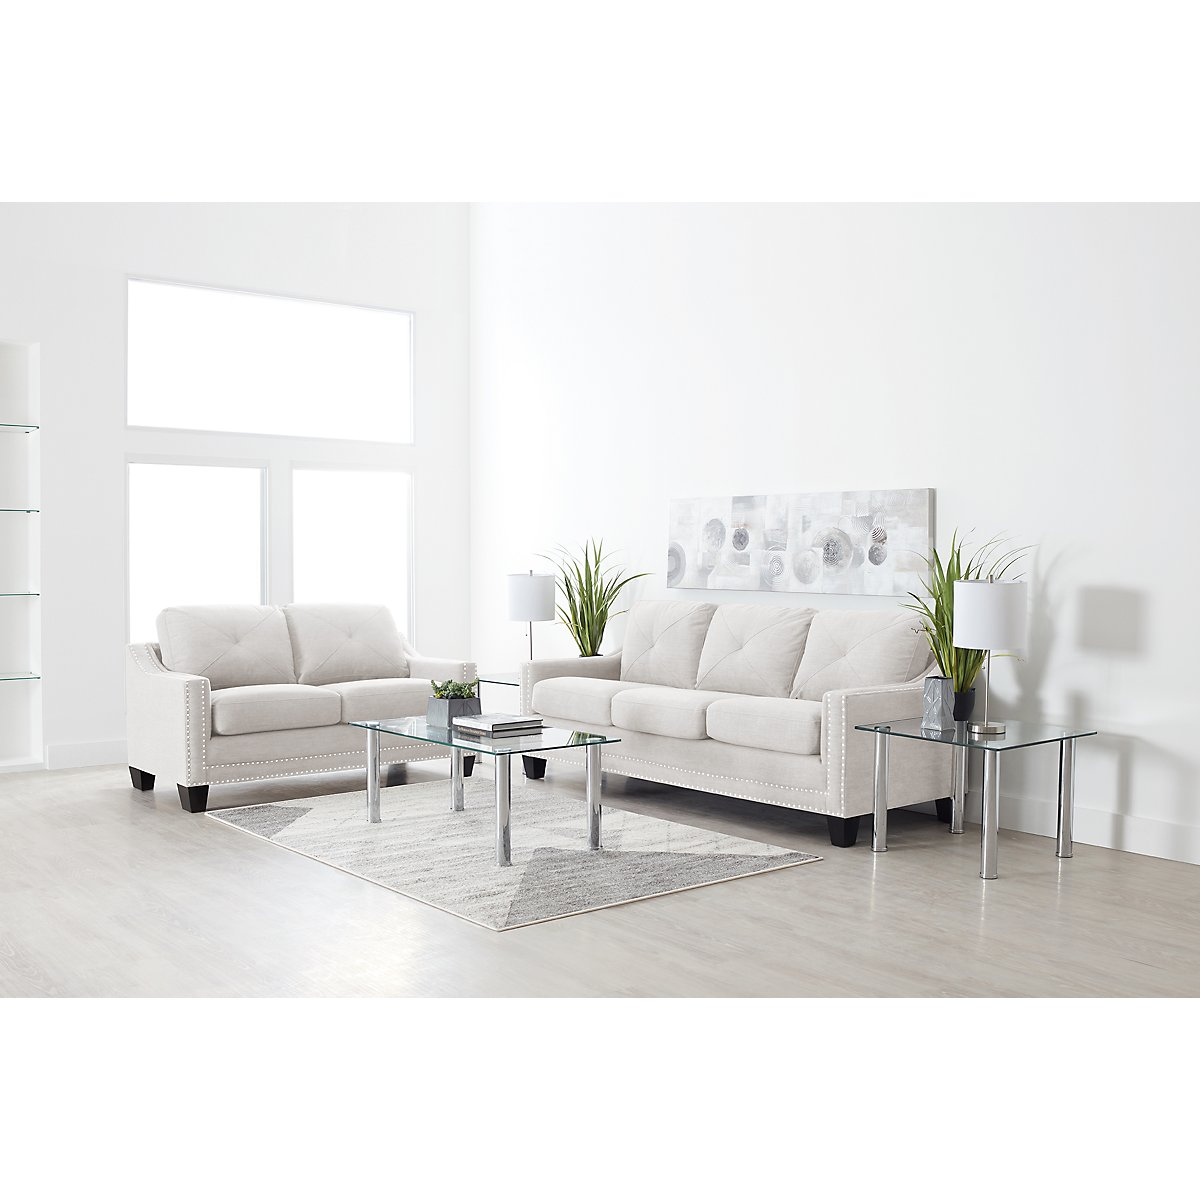 City Furniture: Malone Beige Large 7-Piece Living Room Package